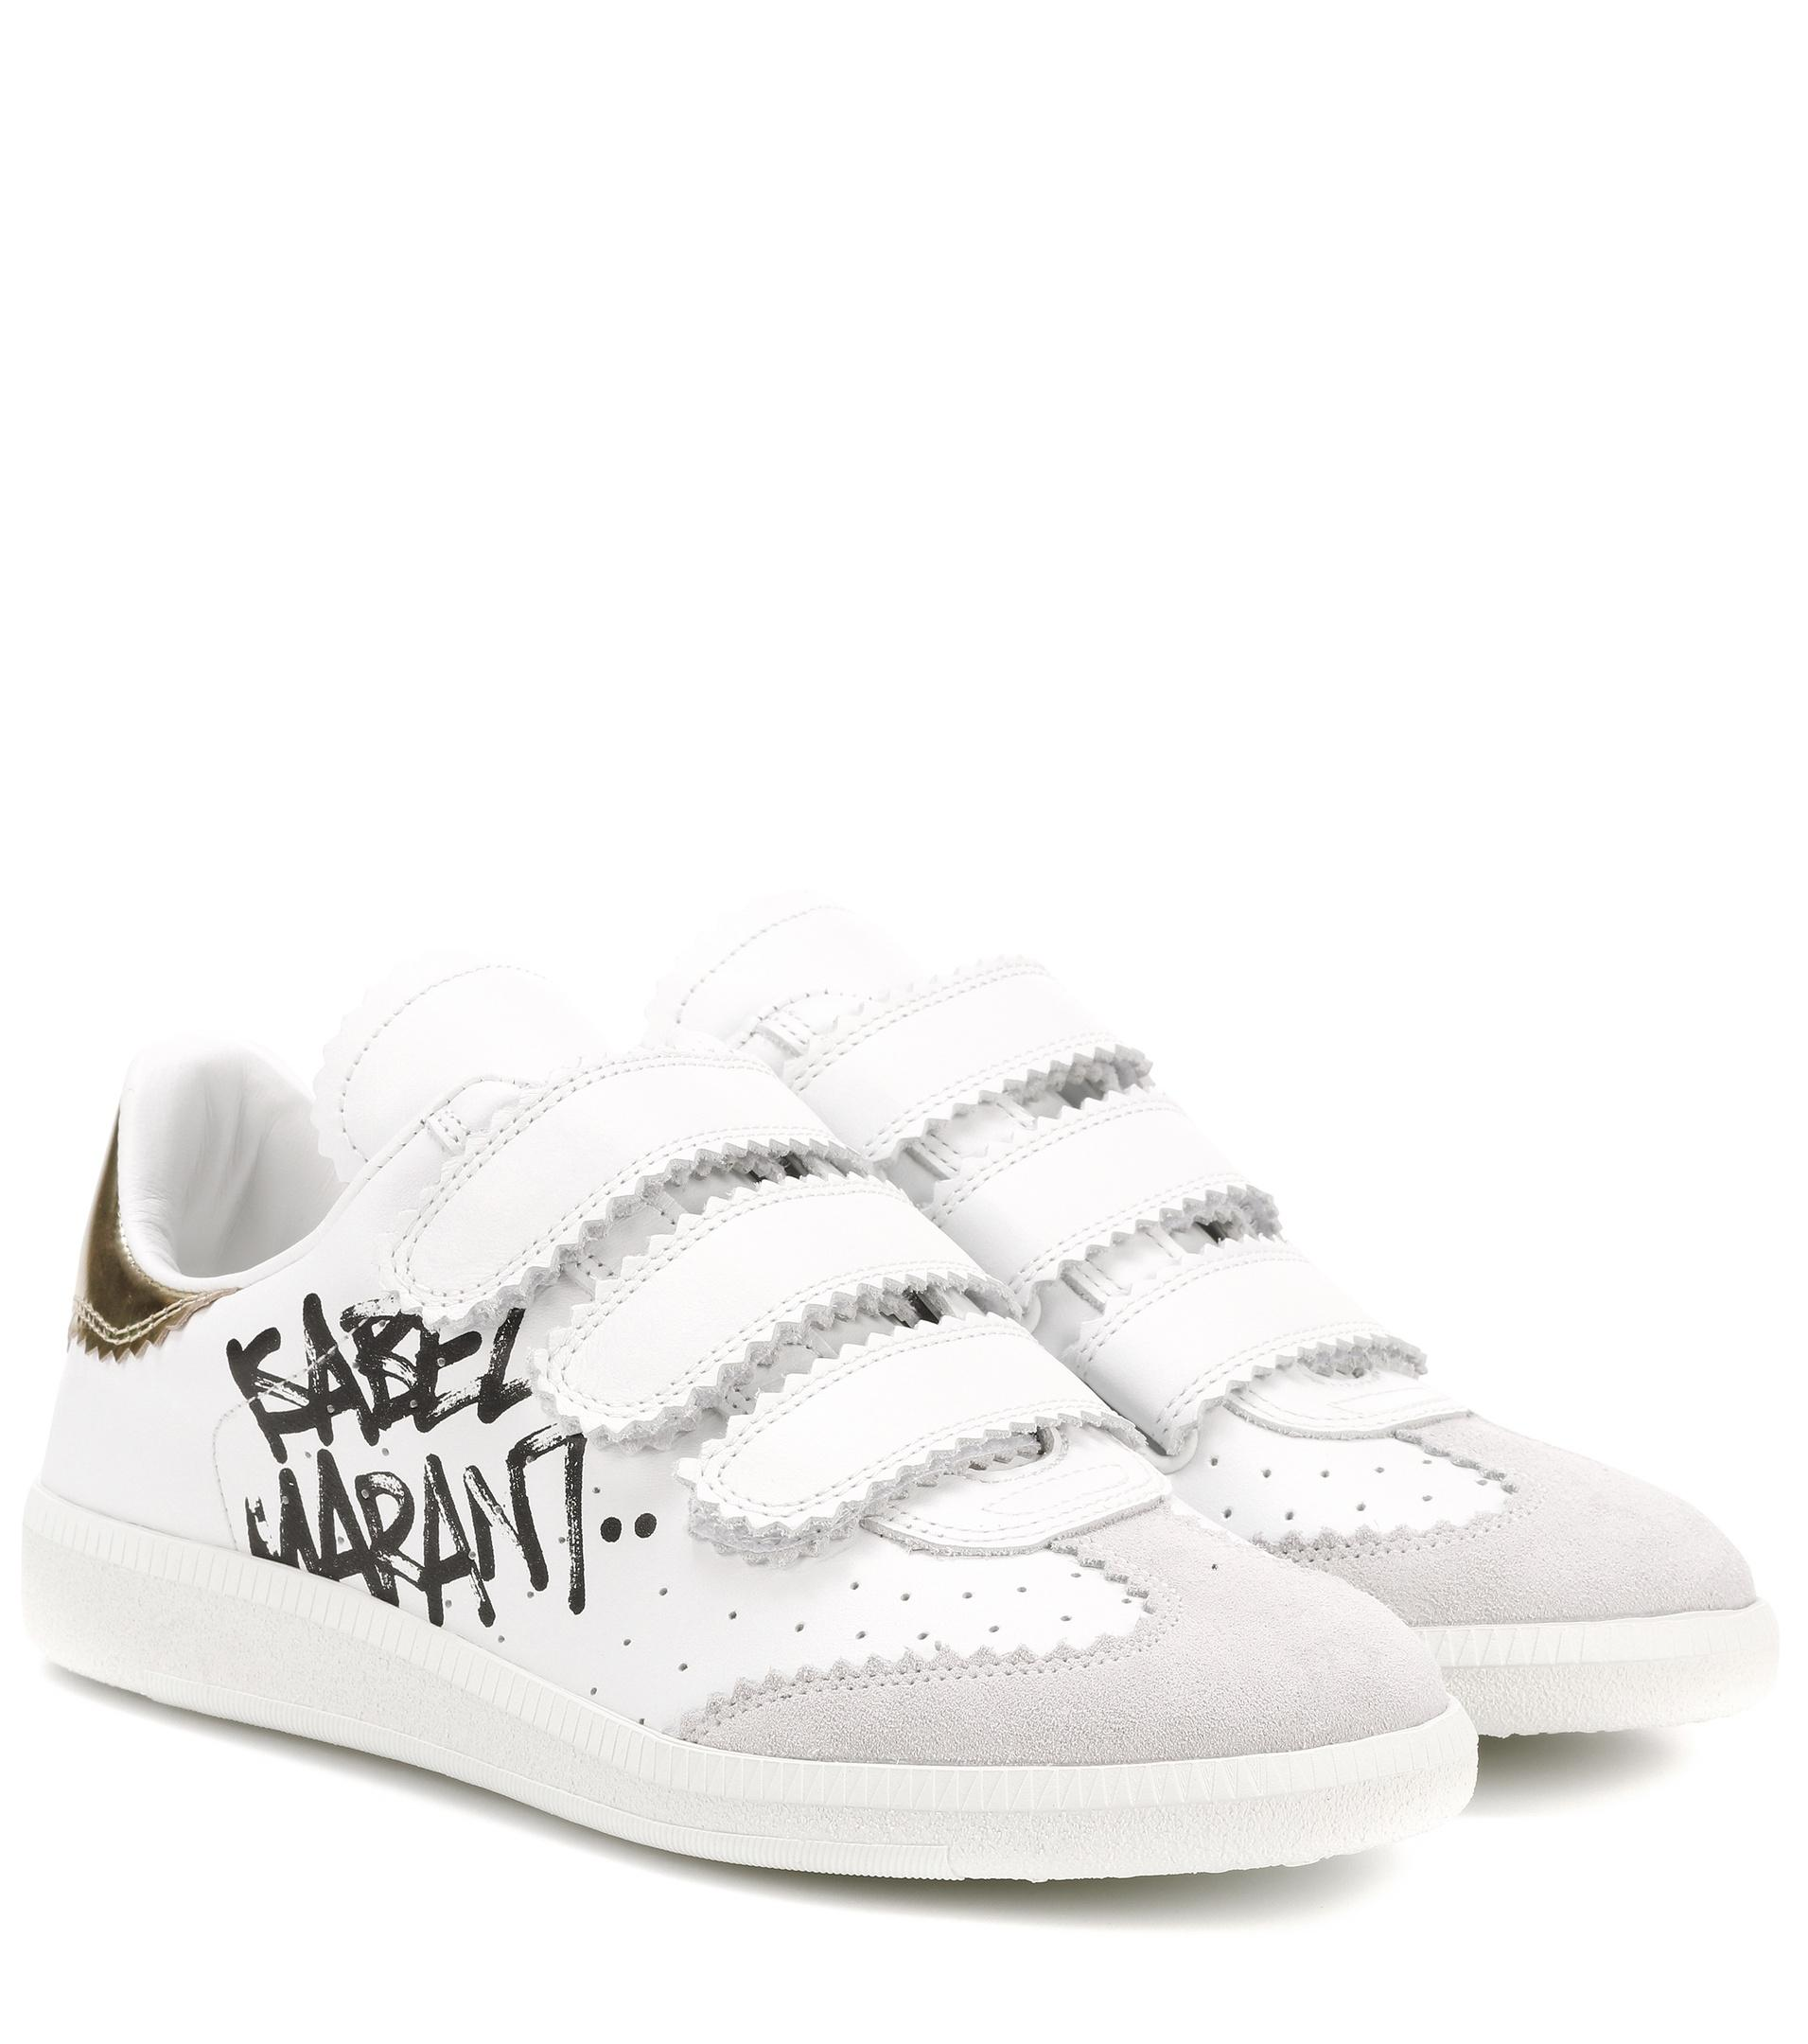 69dfca0d53 Isabel Marant Beth Printed Leather Sneakers in White - Lyst